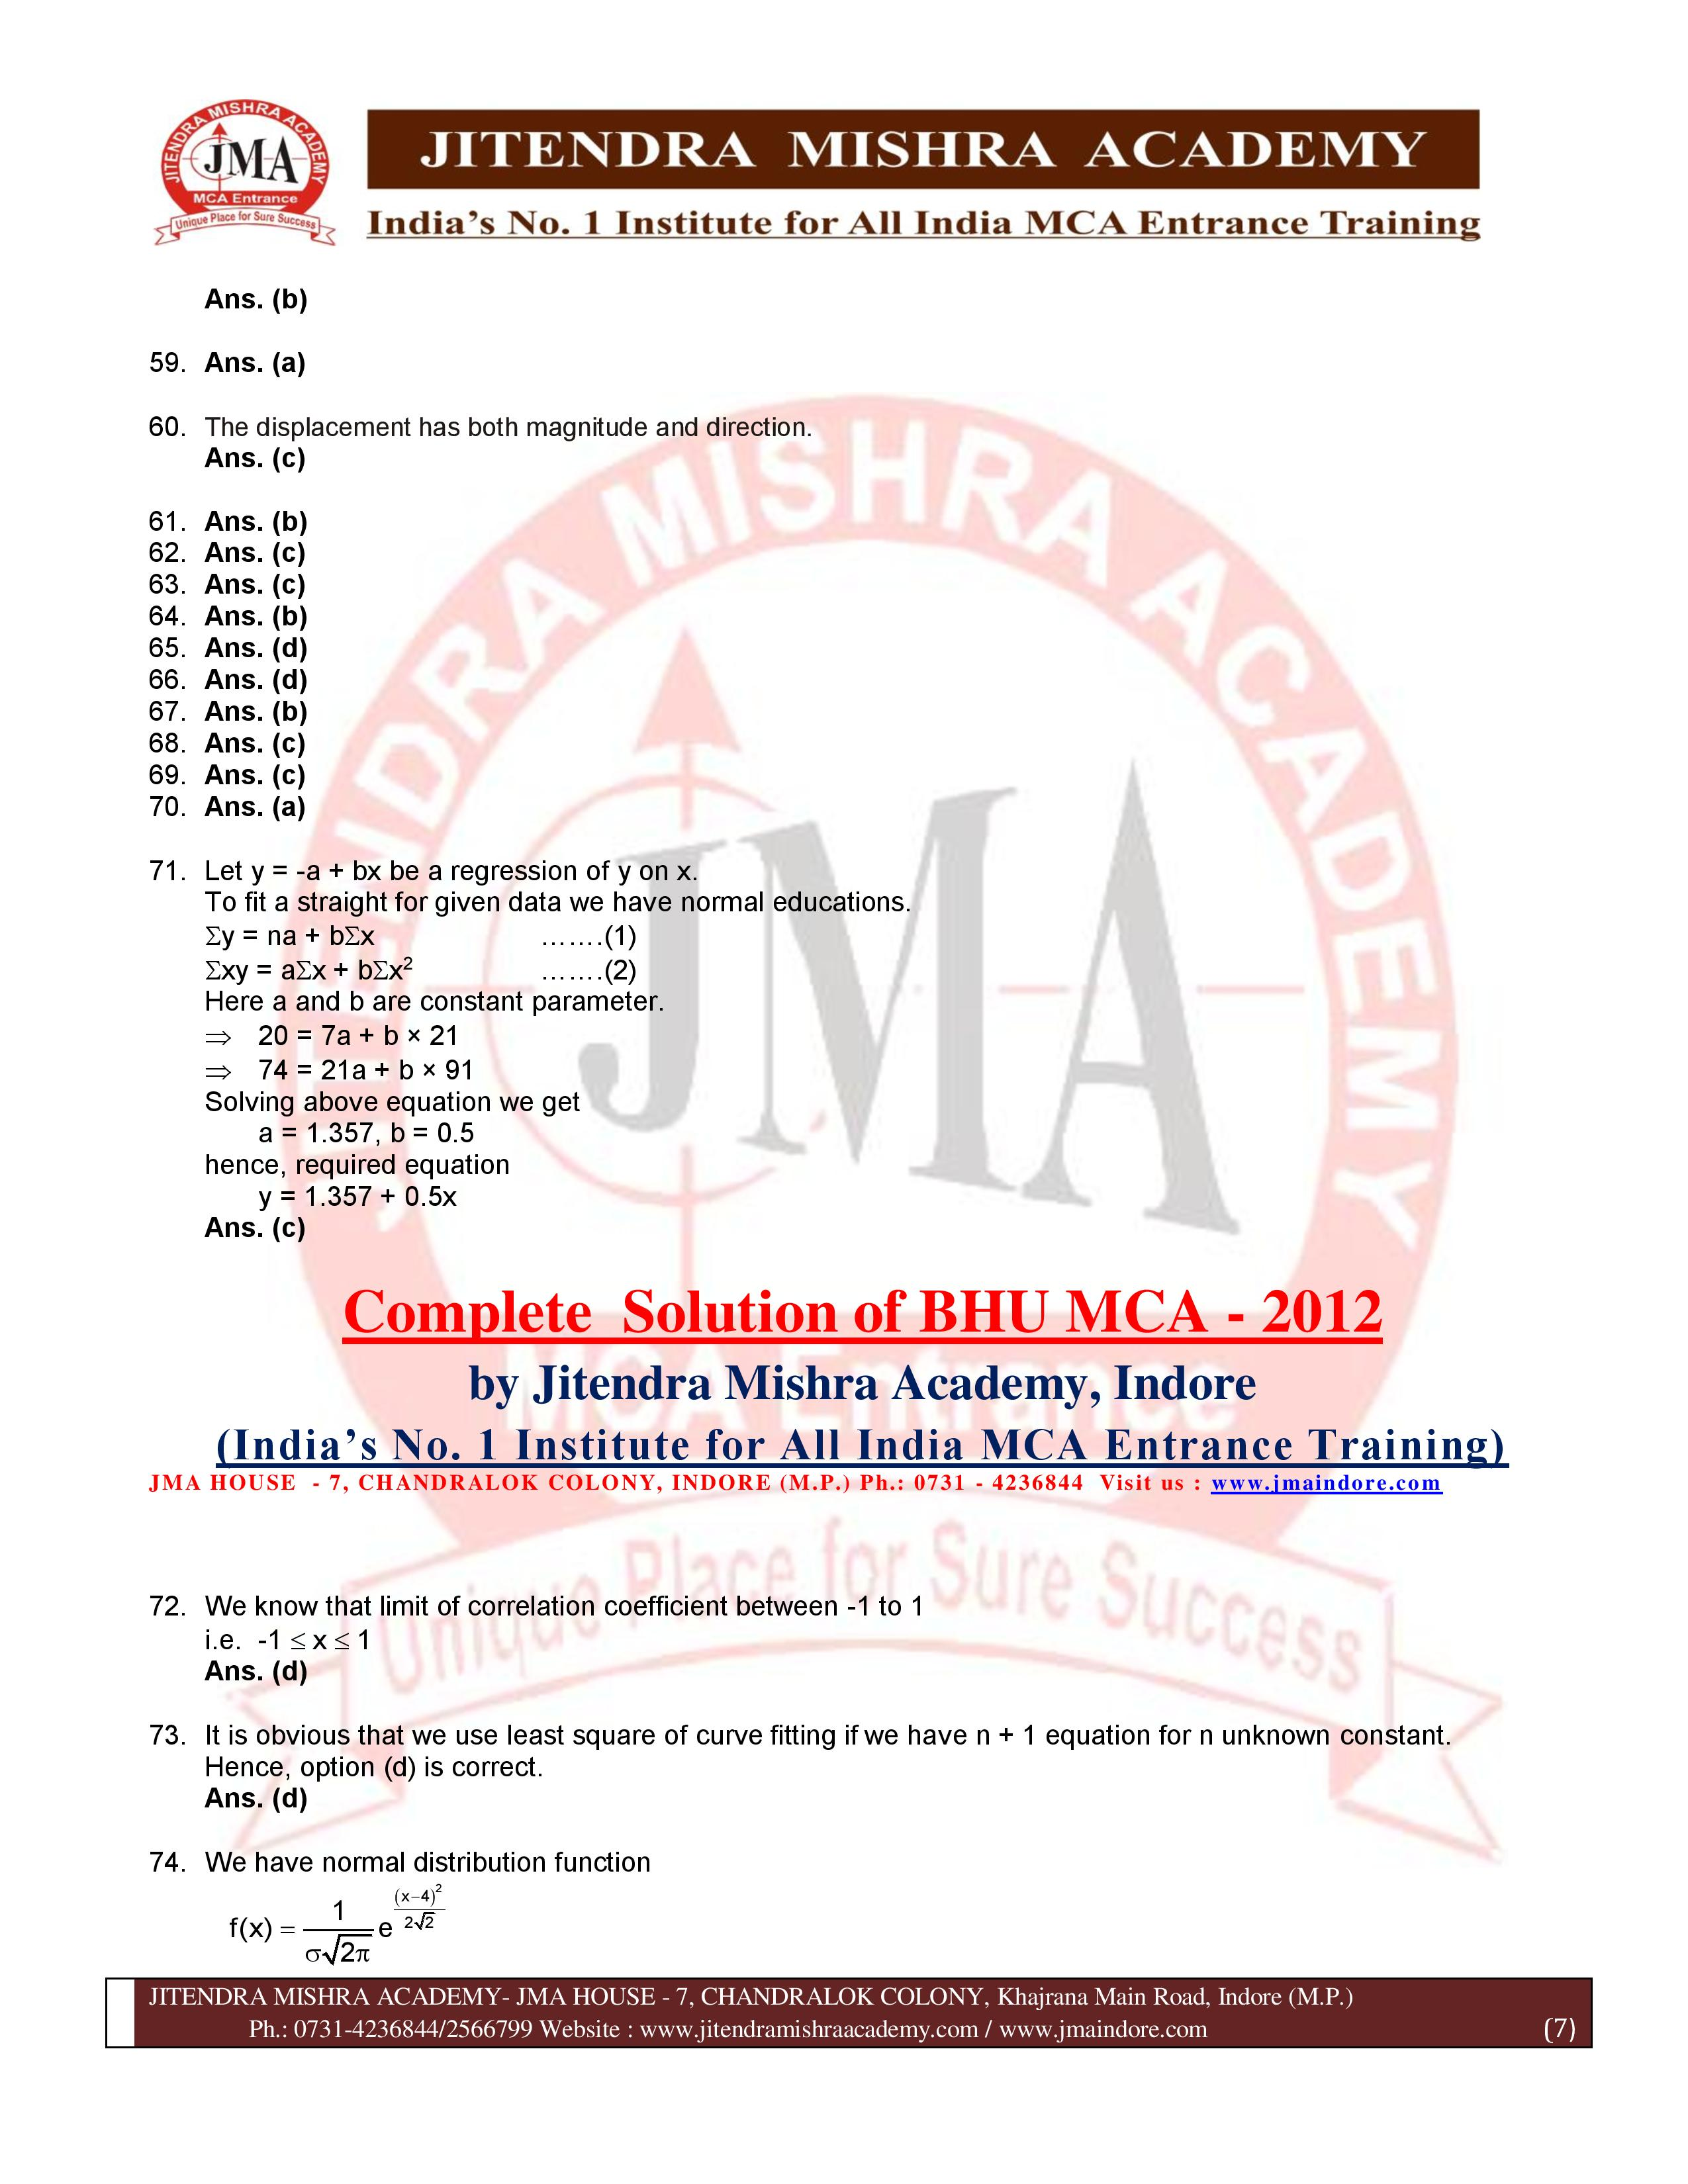 BHU 2012 SOLUTION (SET - 2) (07.07.16)-page-007